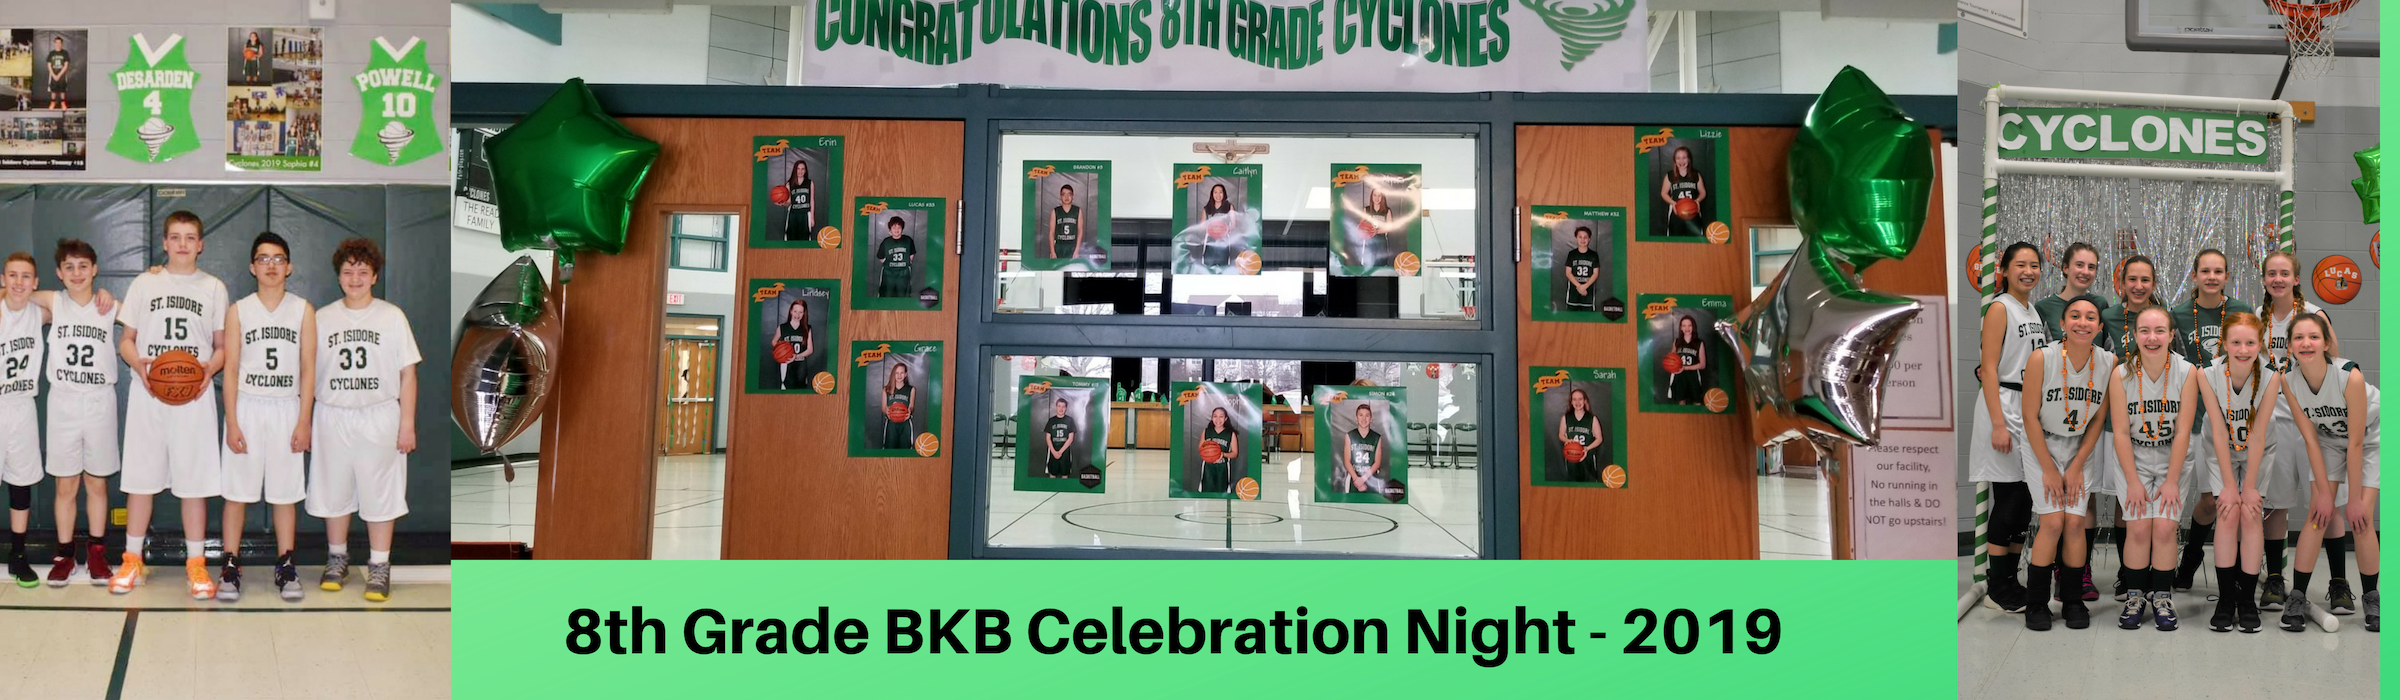 8th Grade BKB Celebration Night – 2019